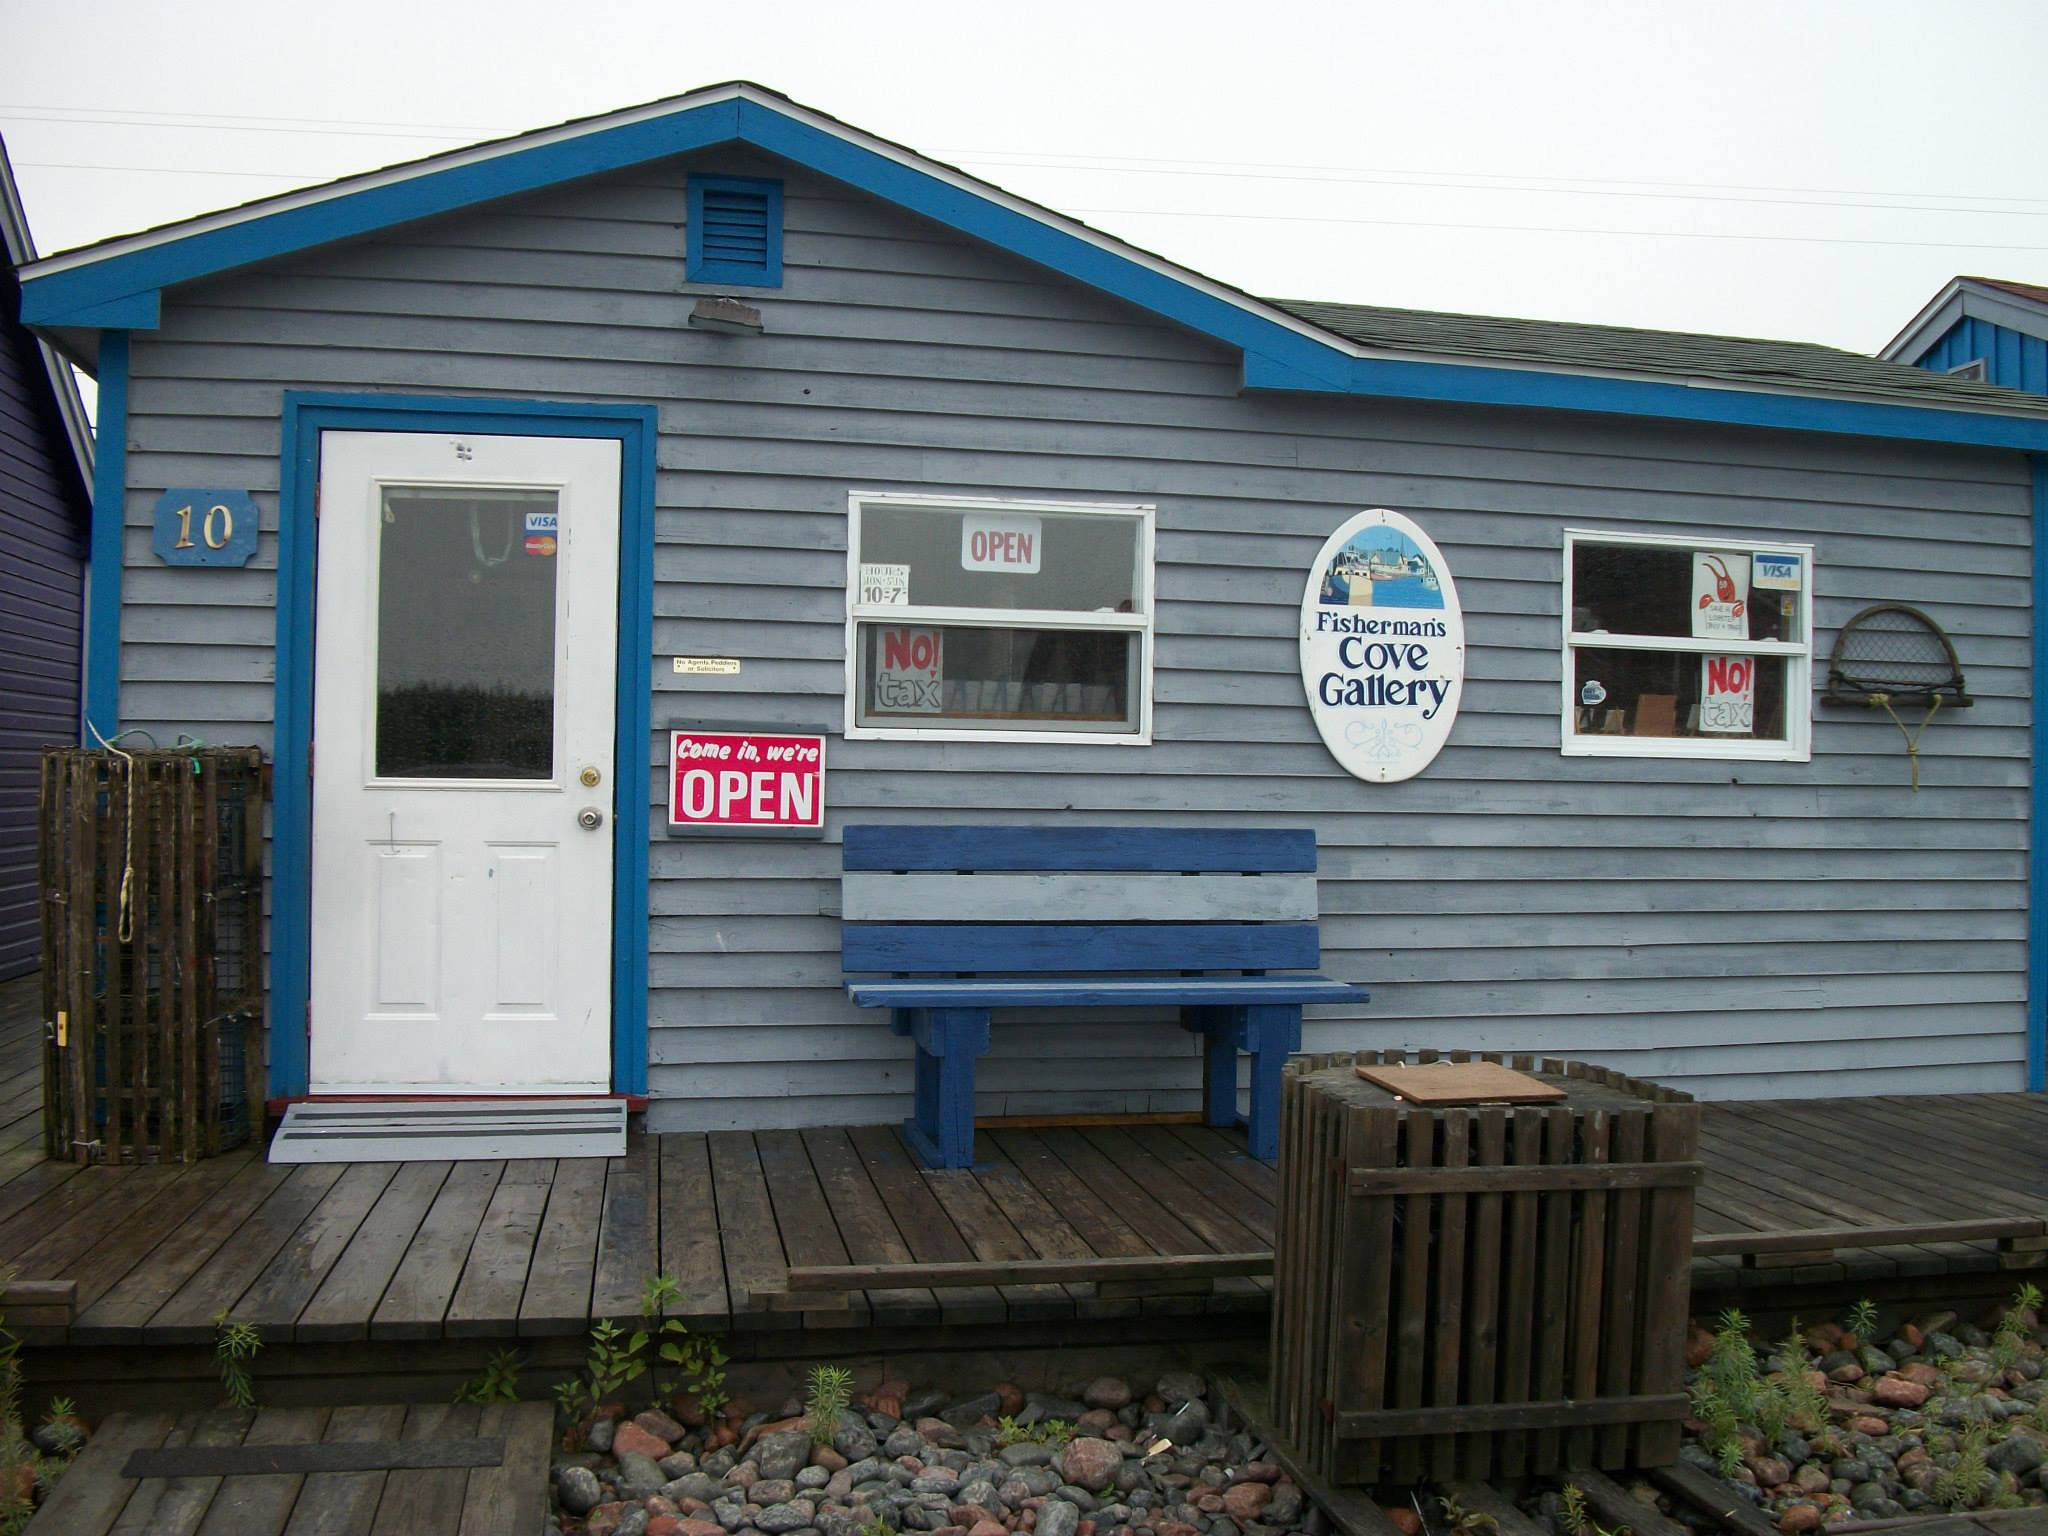 Fisherman's Cove Gallery storefront